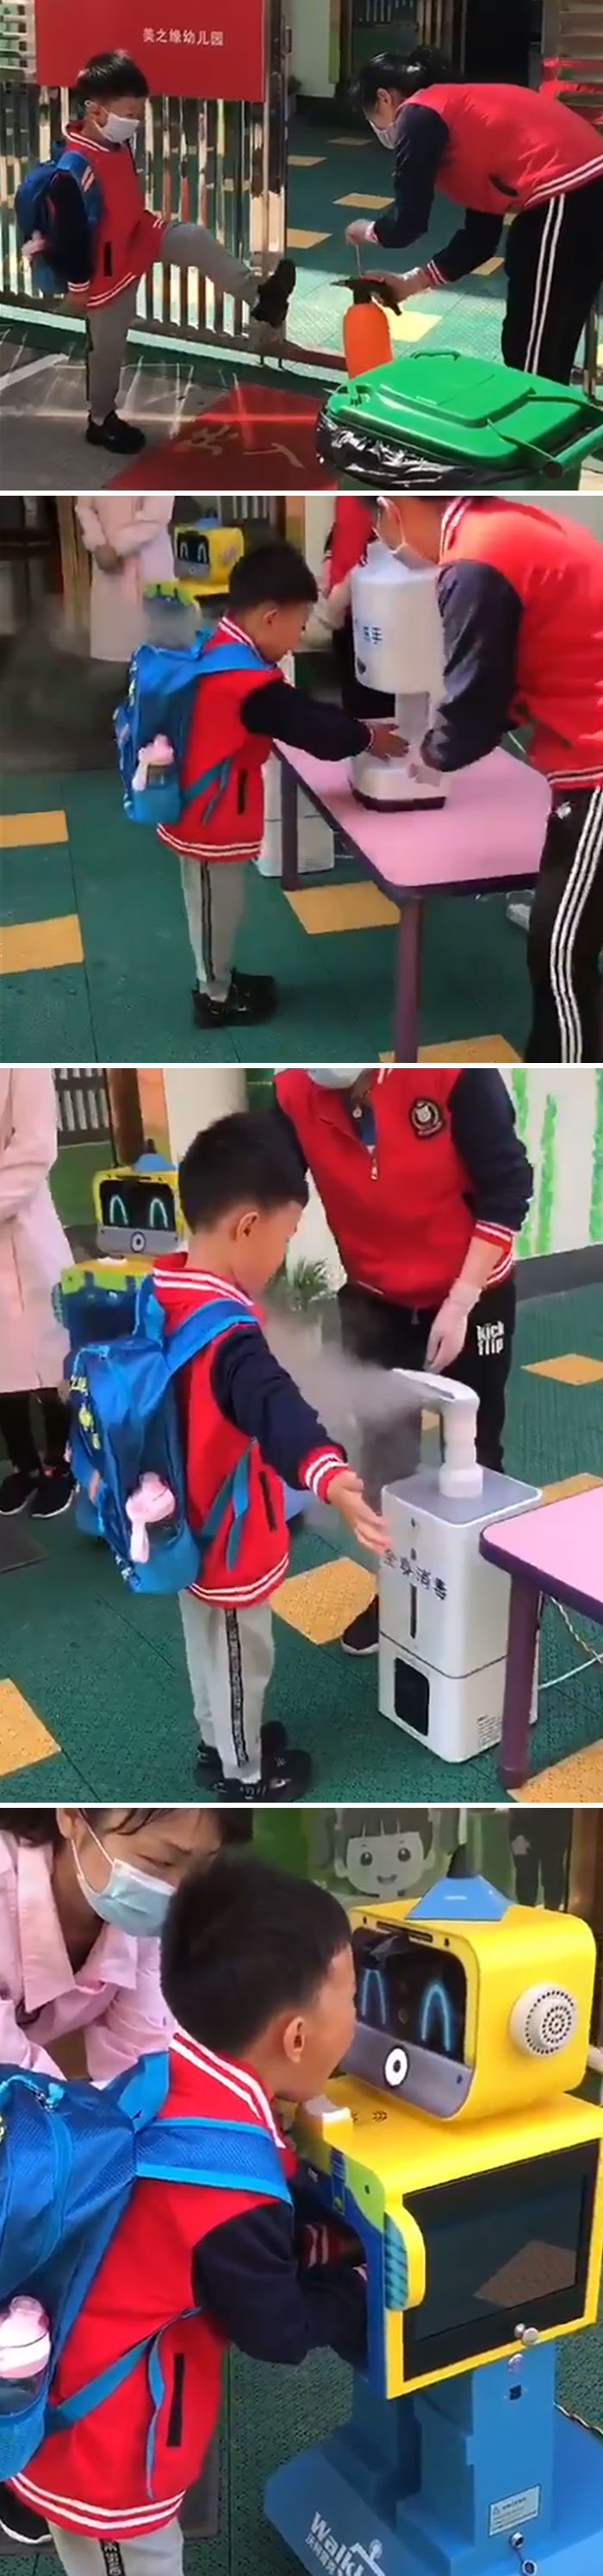 Chinese Student Returning To School, Someone First Sprays Disinfectant On Shoes, Then Sanitizes Hands, Spray Sterilizes His Clothes And Backpack And A Robot Scans His Eyes, Hands, And Throat